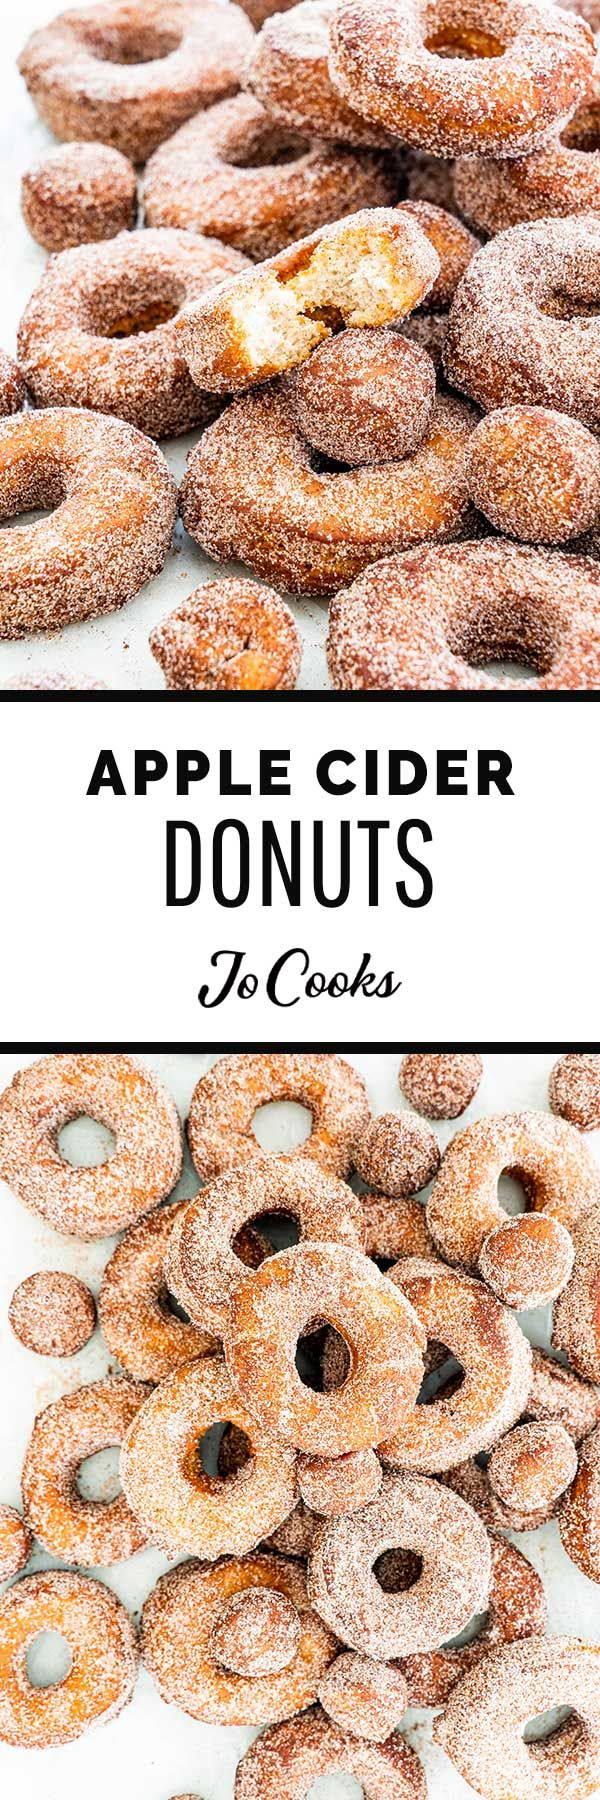 Perfectly spiced and beautifully tender, these Apple Cider Donuts are about to be your latest and greatest fall snack, and yes I know the competition is stacked. Full of warm cinnamon, freshly ground nutmeg, tangy apple cider, and with a heavenly chew, these donuts are buzz worthy. #applecider #donuts